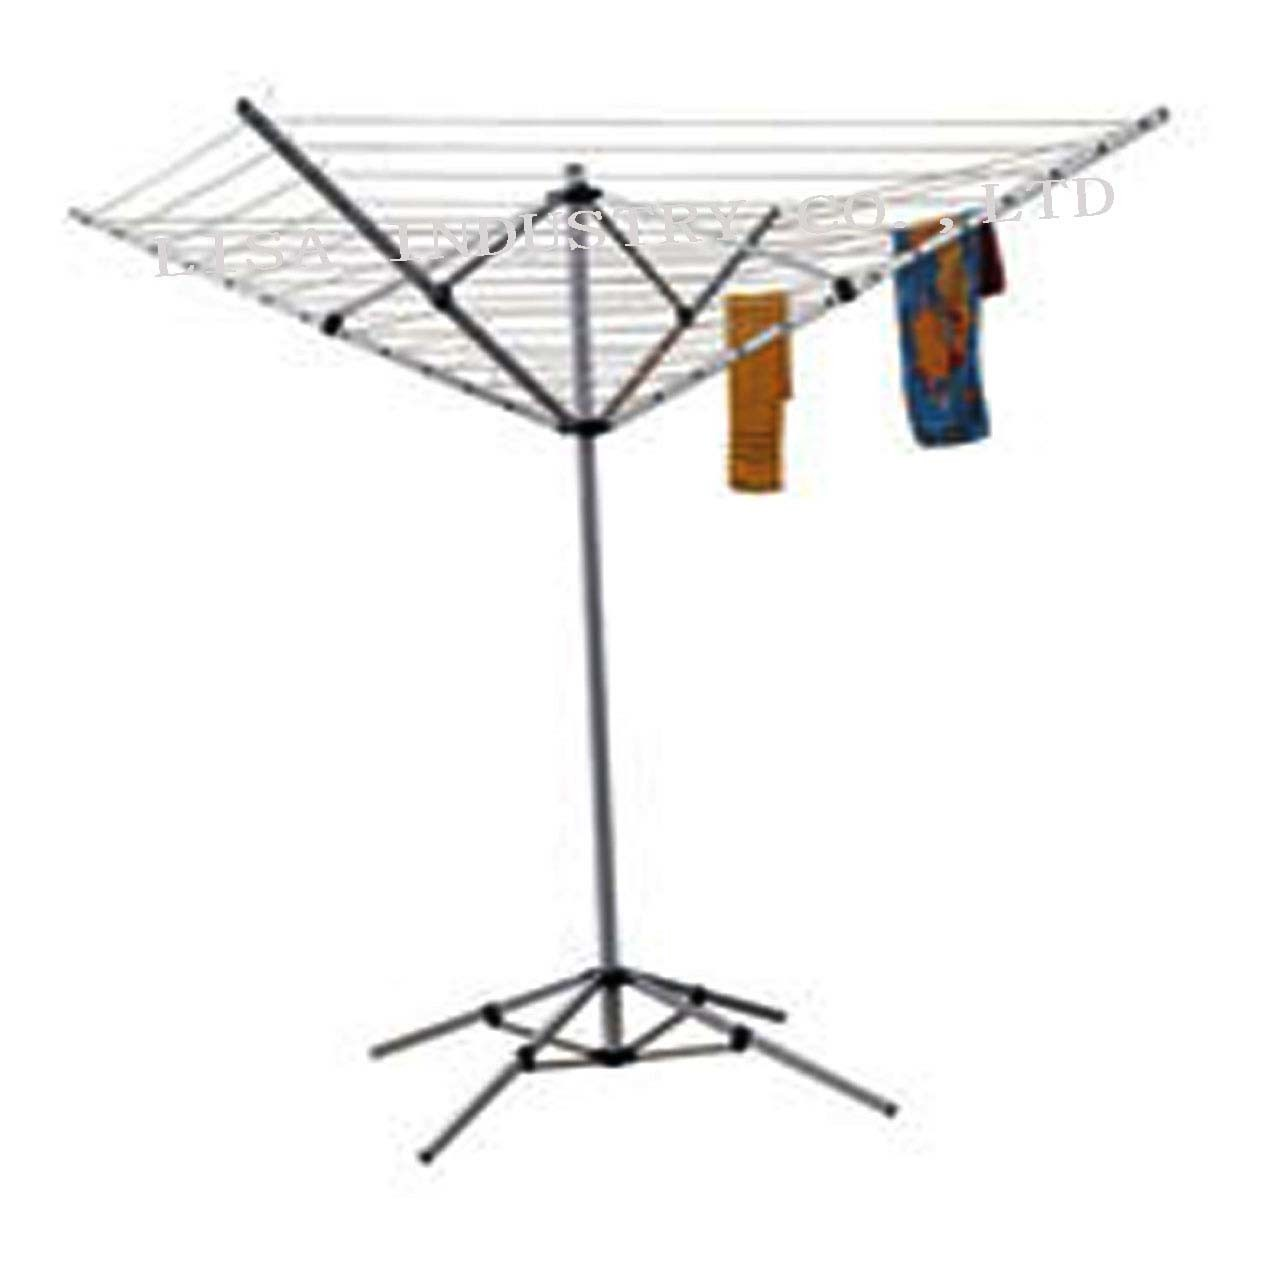 Umbrella Stand Racks  Stands - Compare Prices, Find  Shop Racks